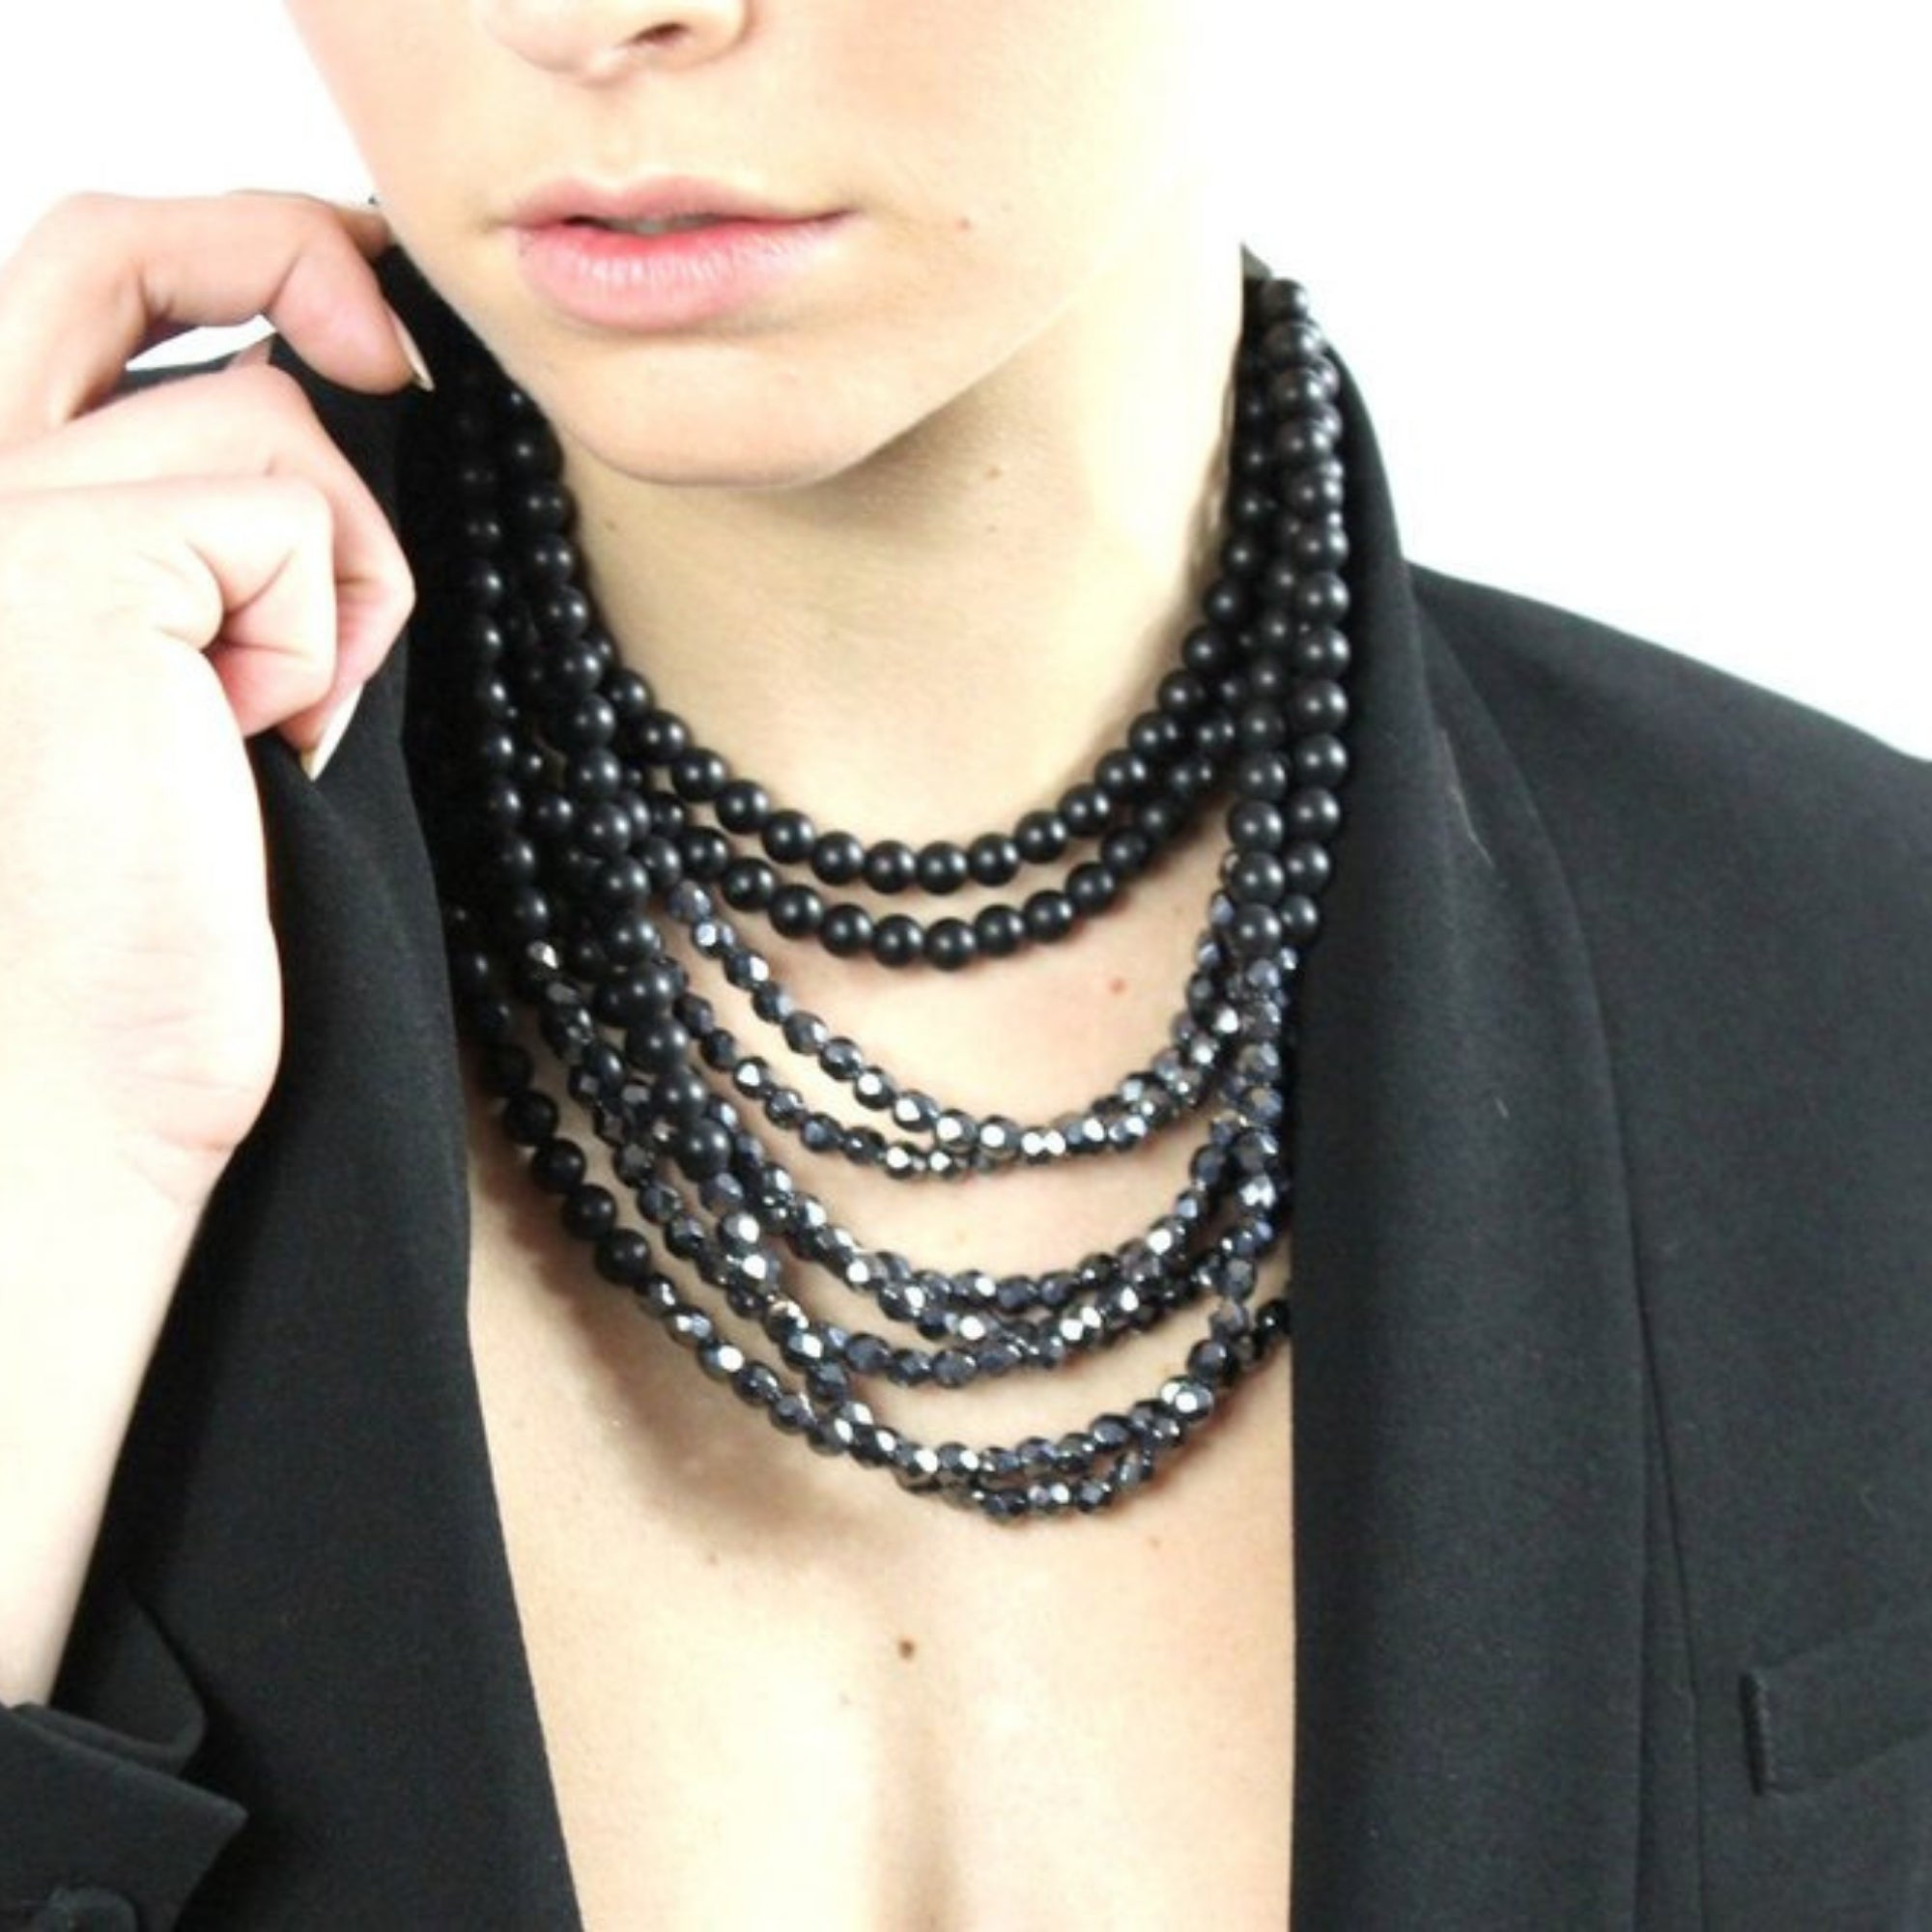 Hematite & Black - Fairchild Baldwin - Handmade in Italy